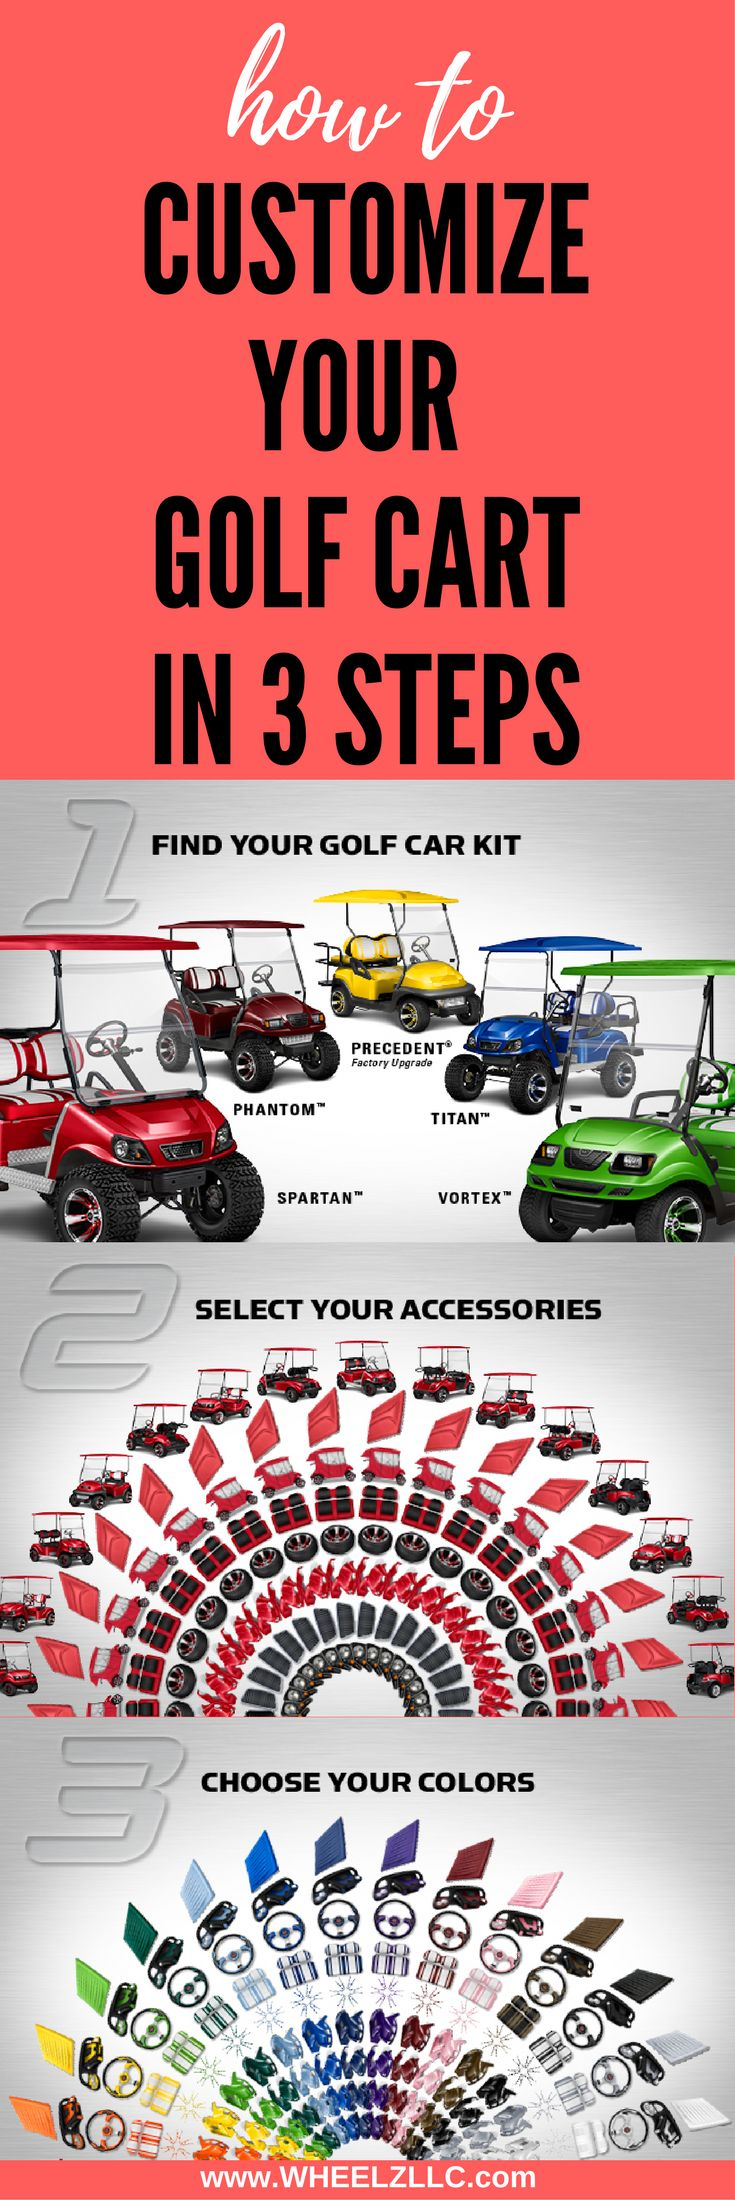 Doubletake golf cart products are designed for EZGO, Club Car, and Yamaha golf carts to color match and customize your DIY custom golf cart project. #customgolfcart #golfcart